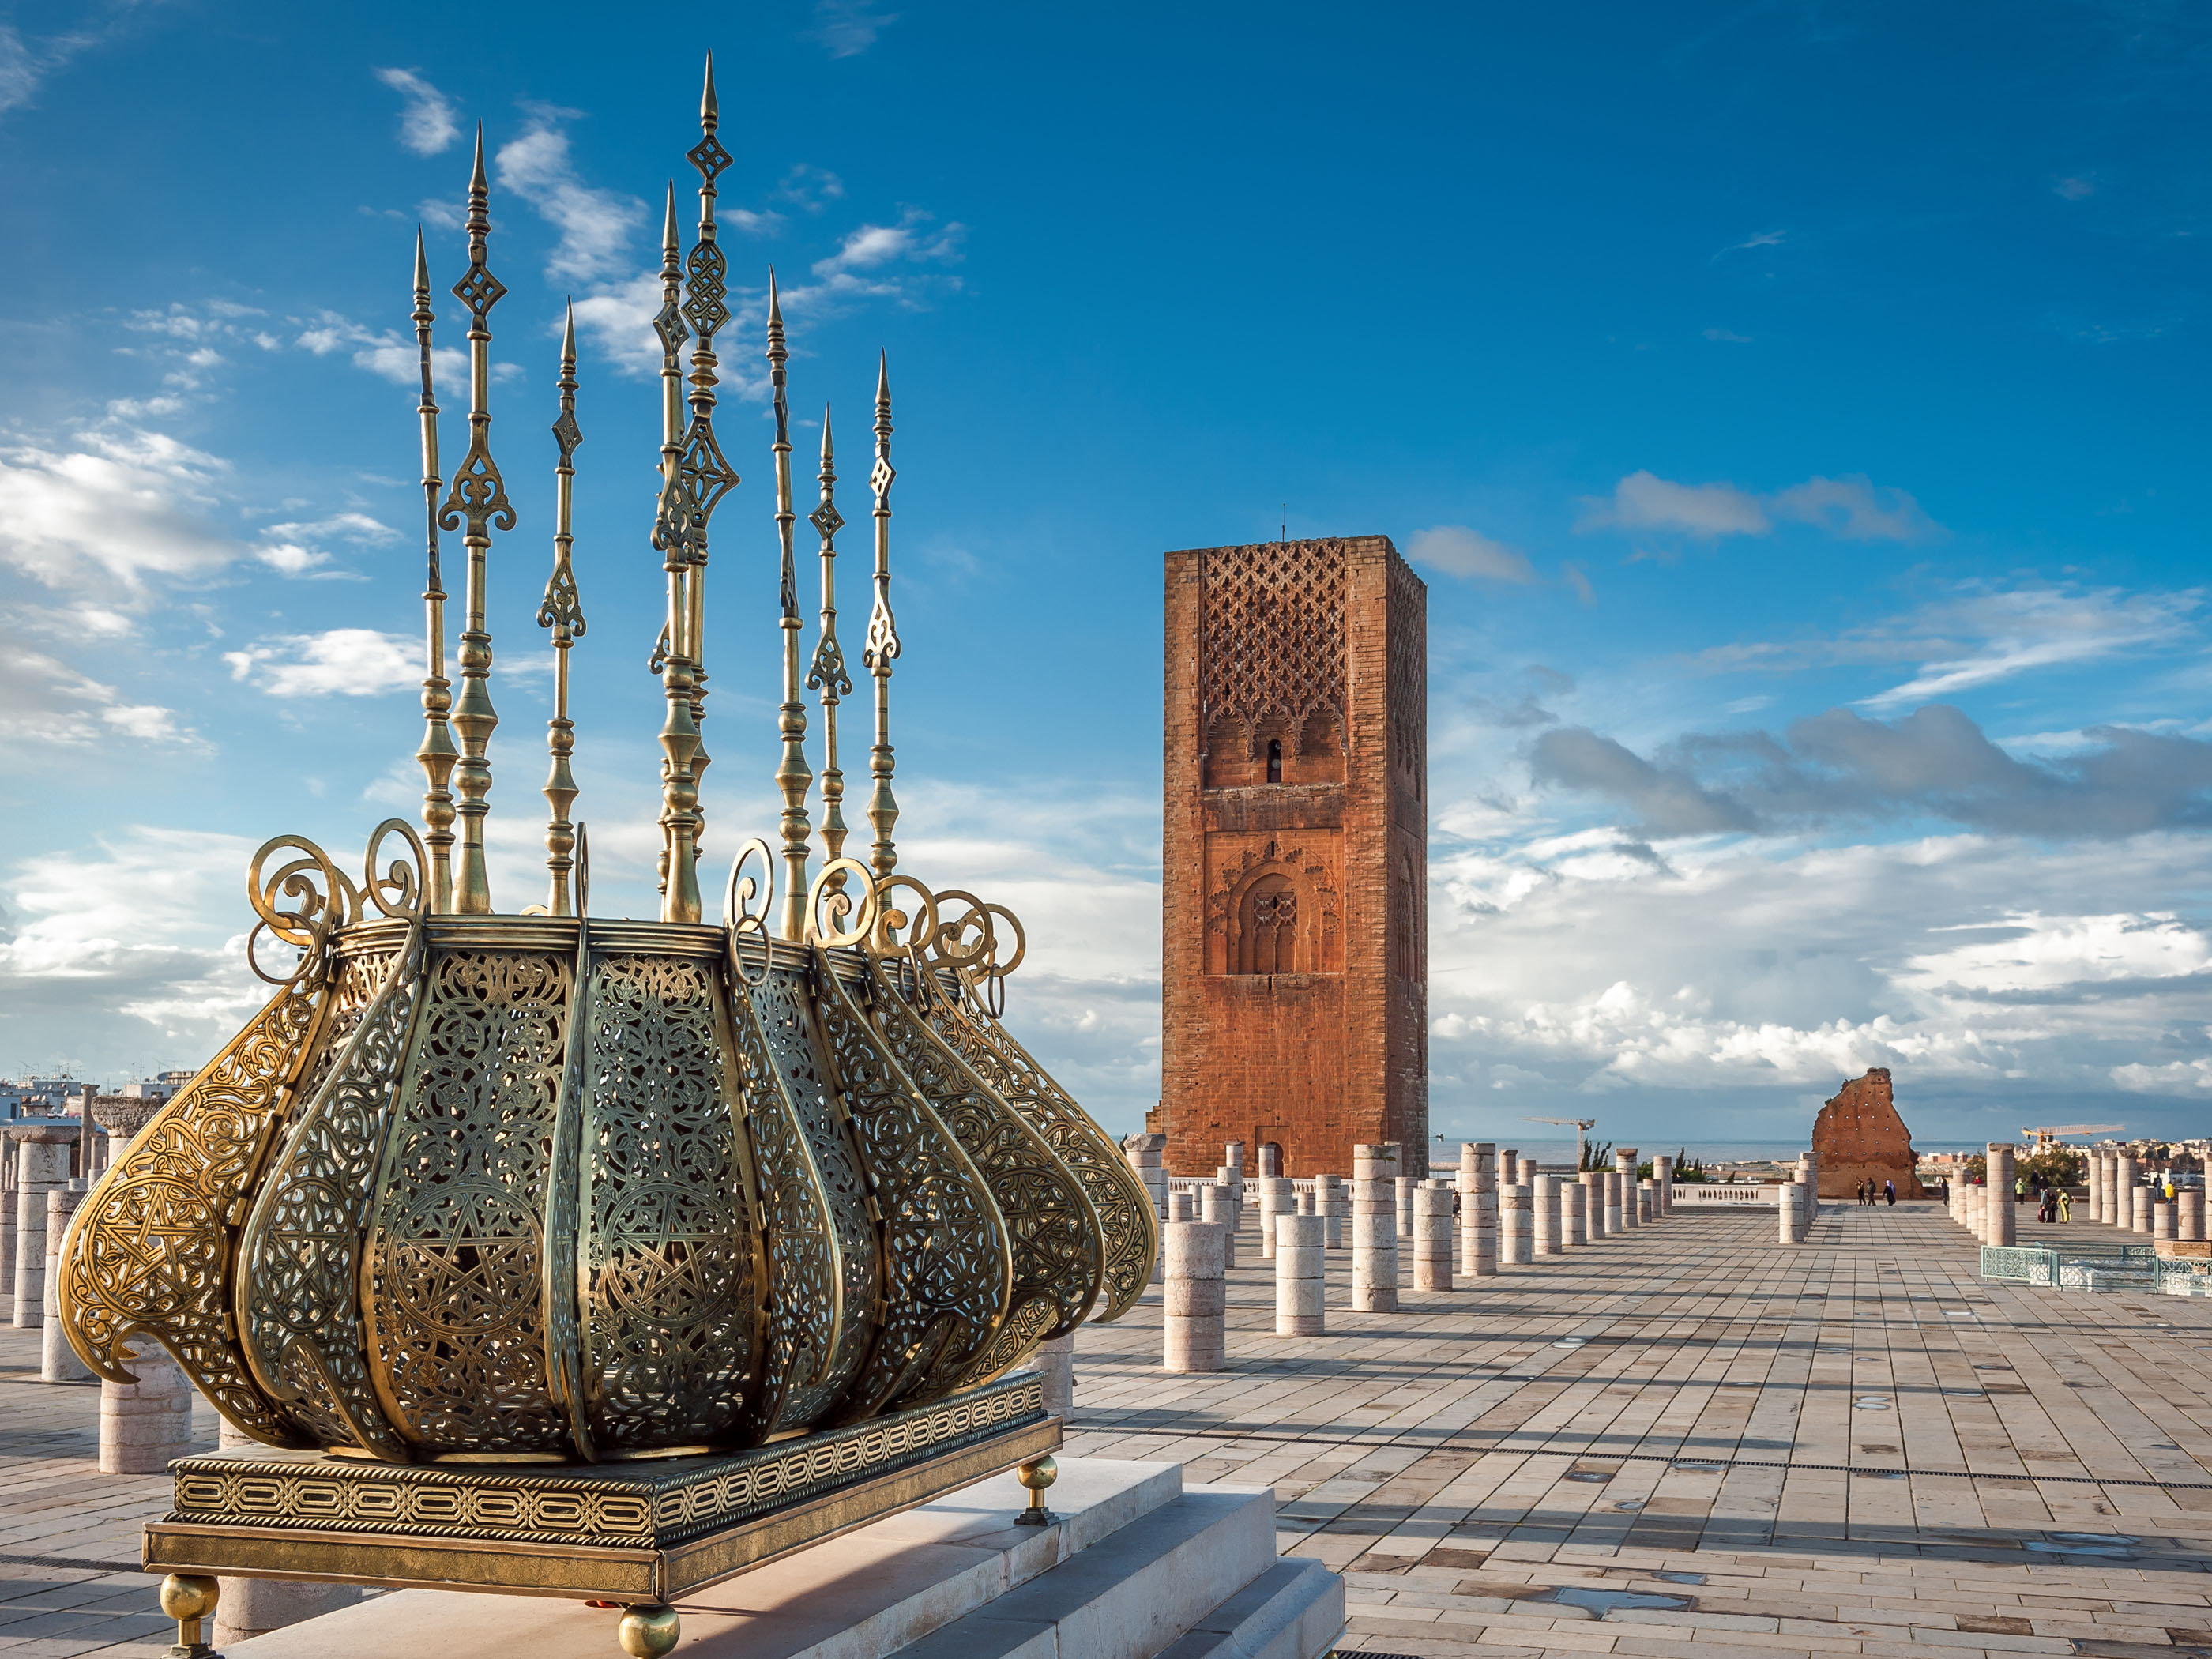 DL on Tour- Winning Morocco's Heart One Lamp at the Time